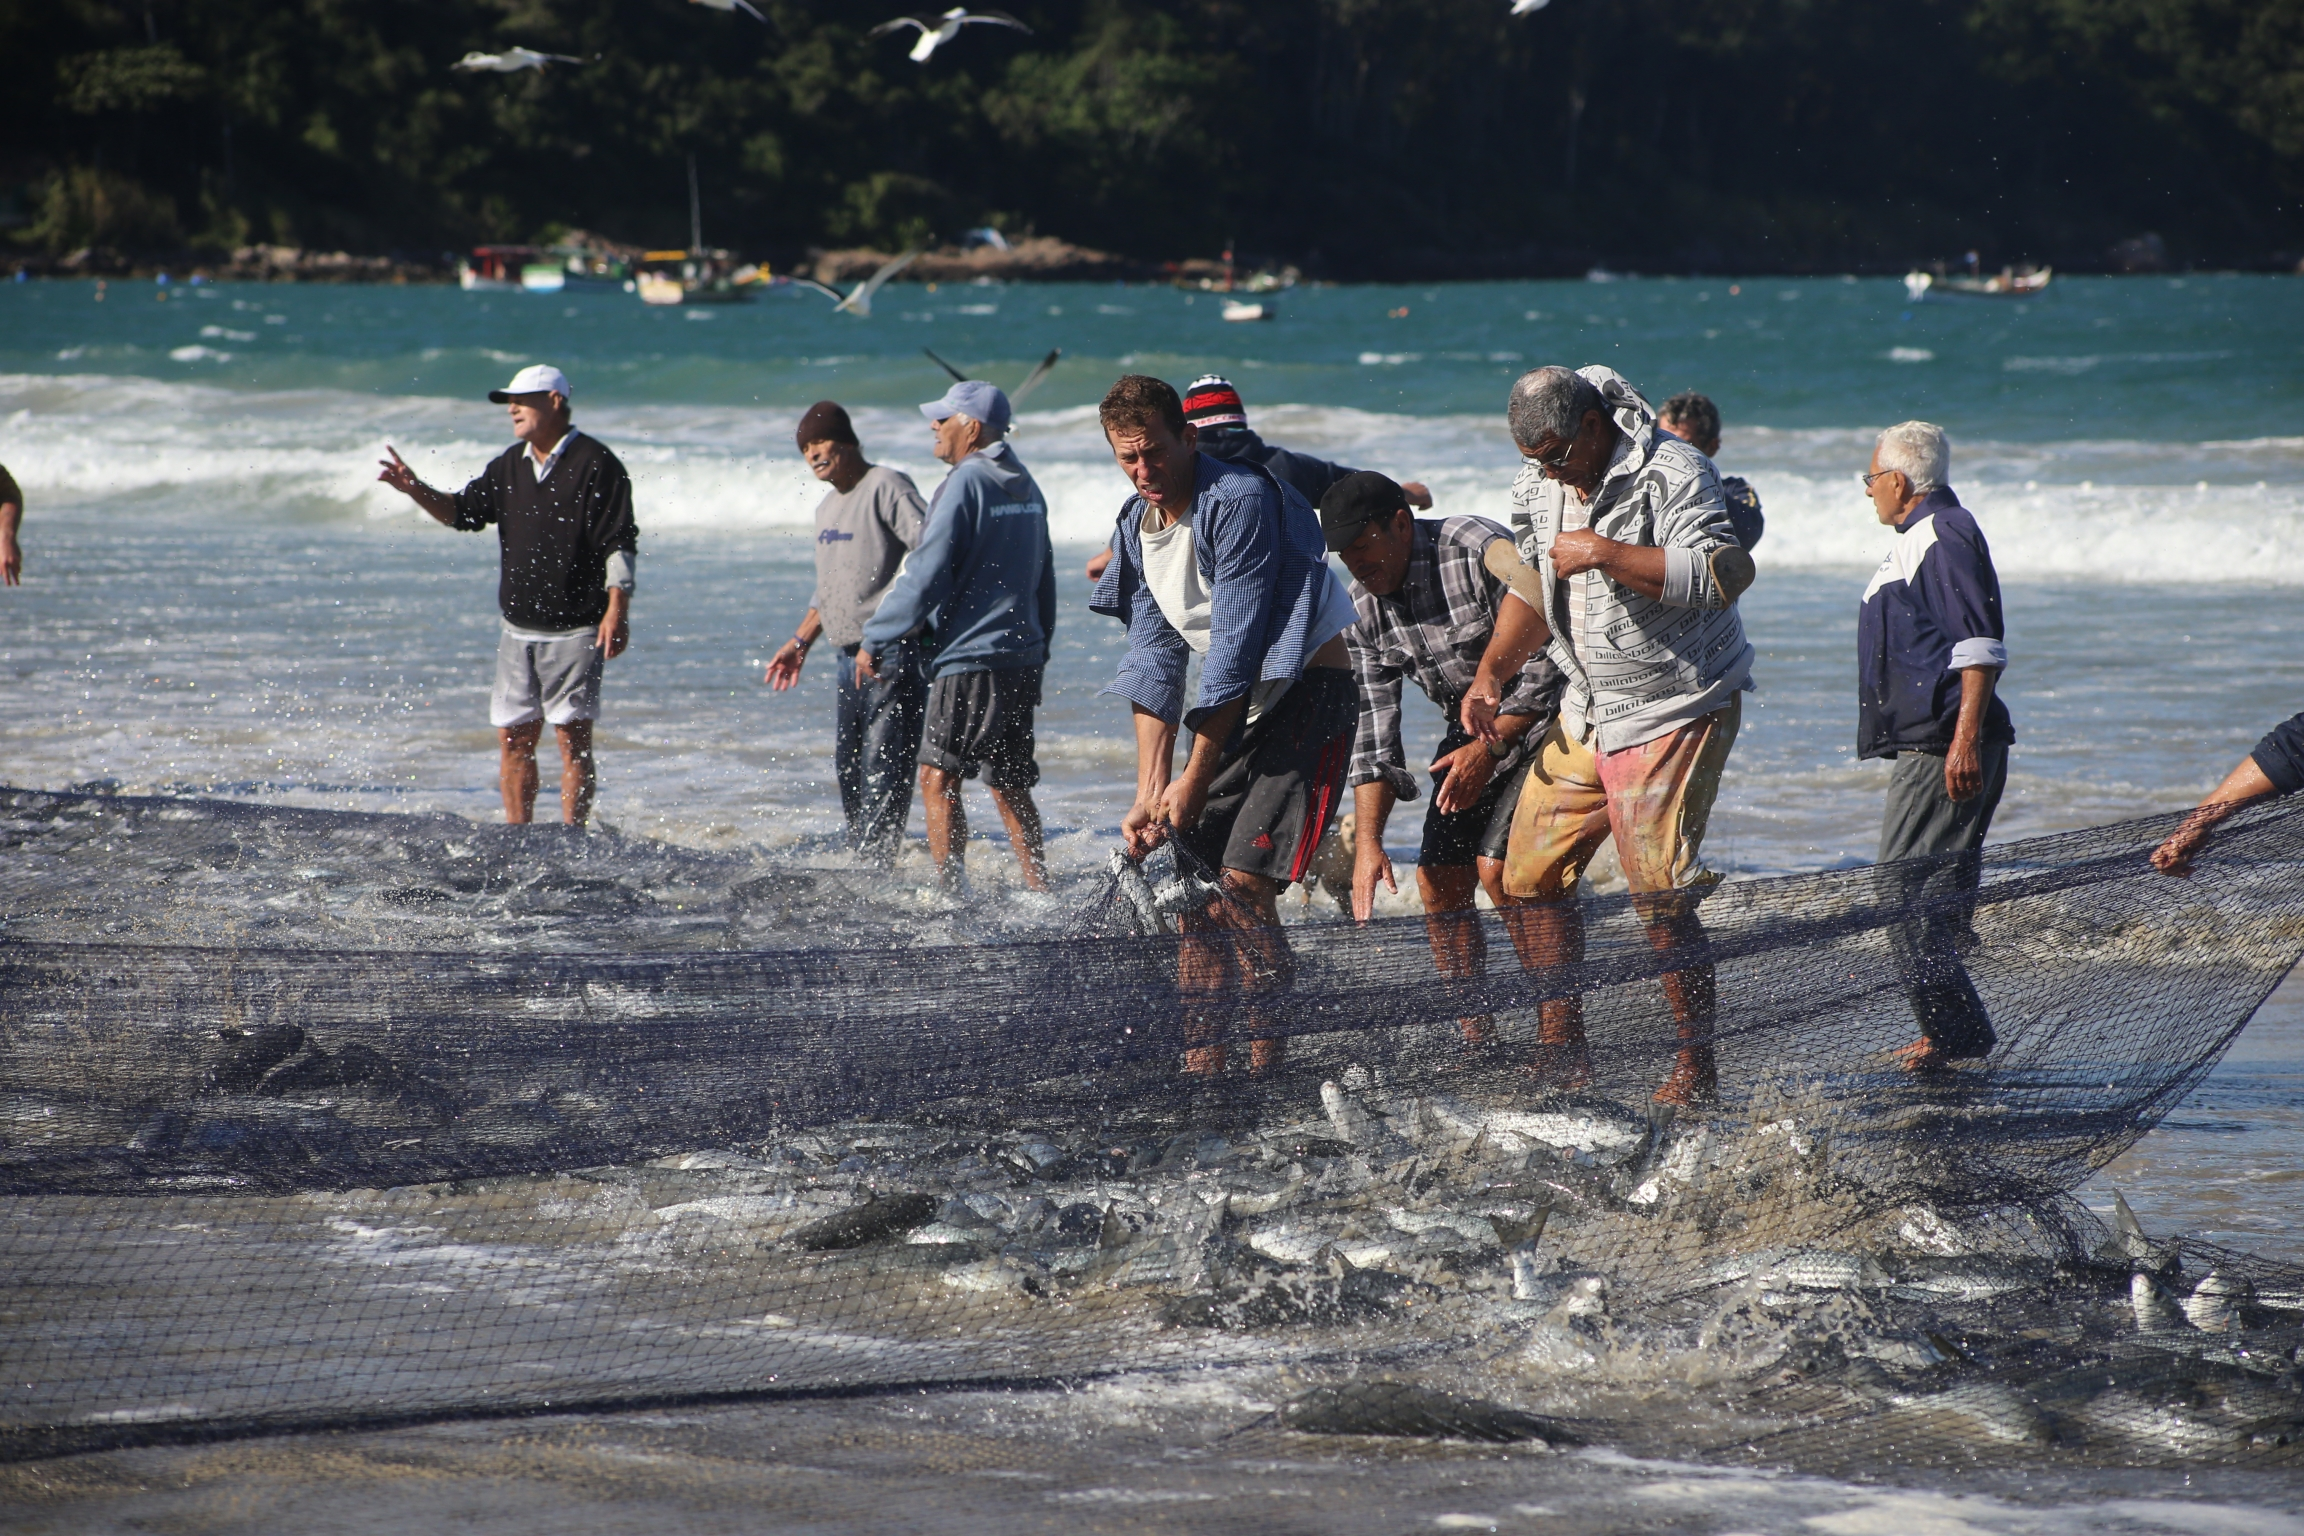 Fisherfolk pull in the net from the sea in Pantano do Sul, Brazil.